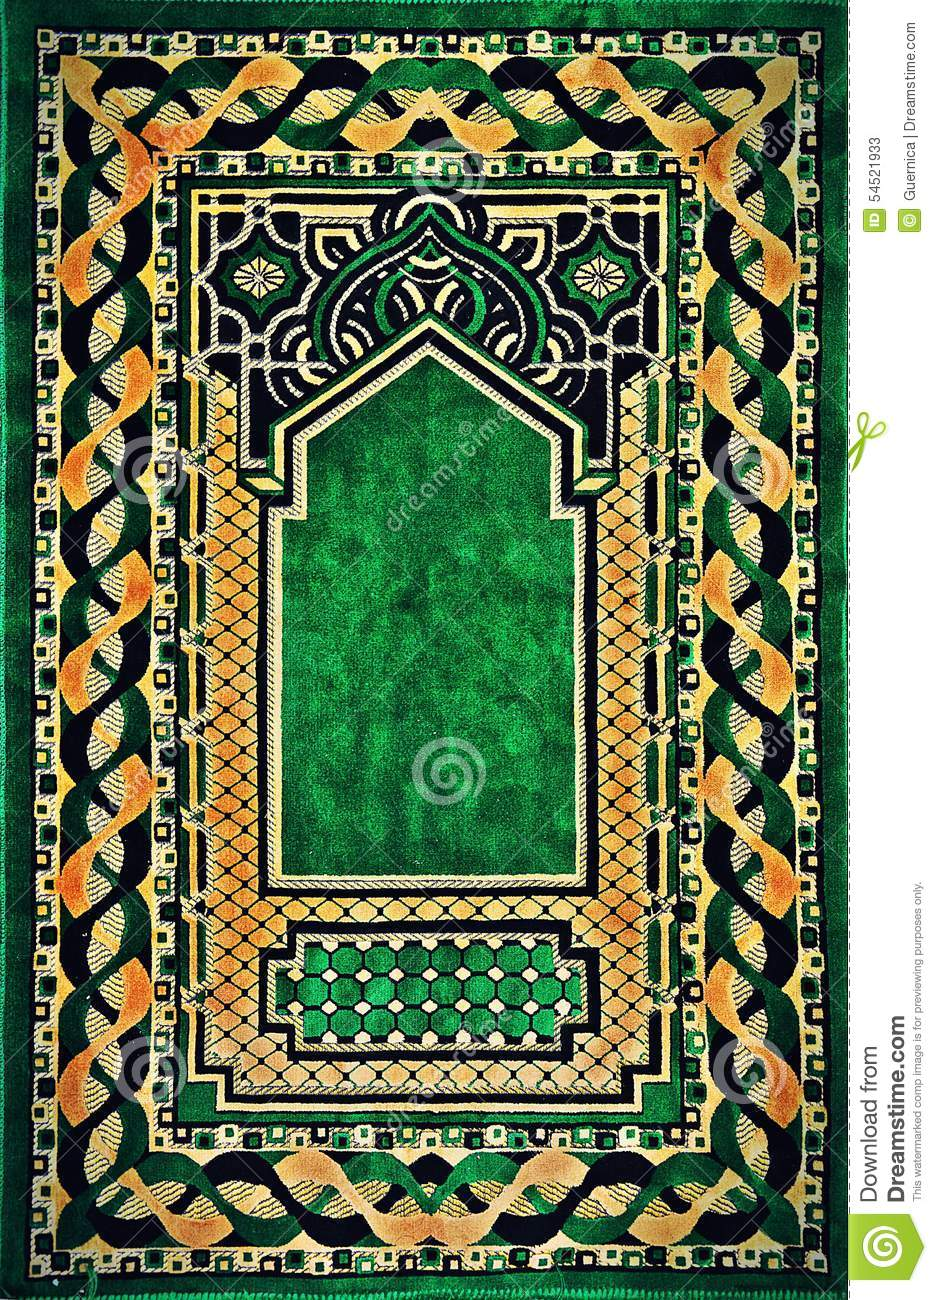 Muslim Carpet Textile Design